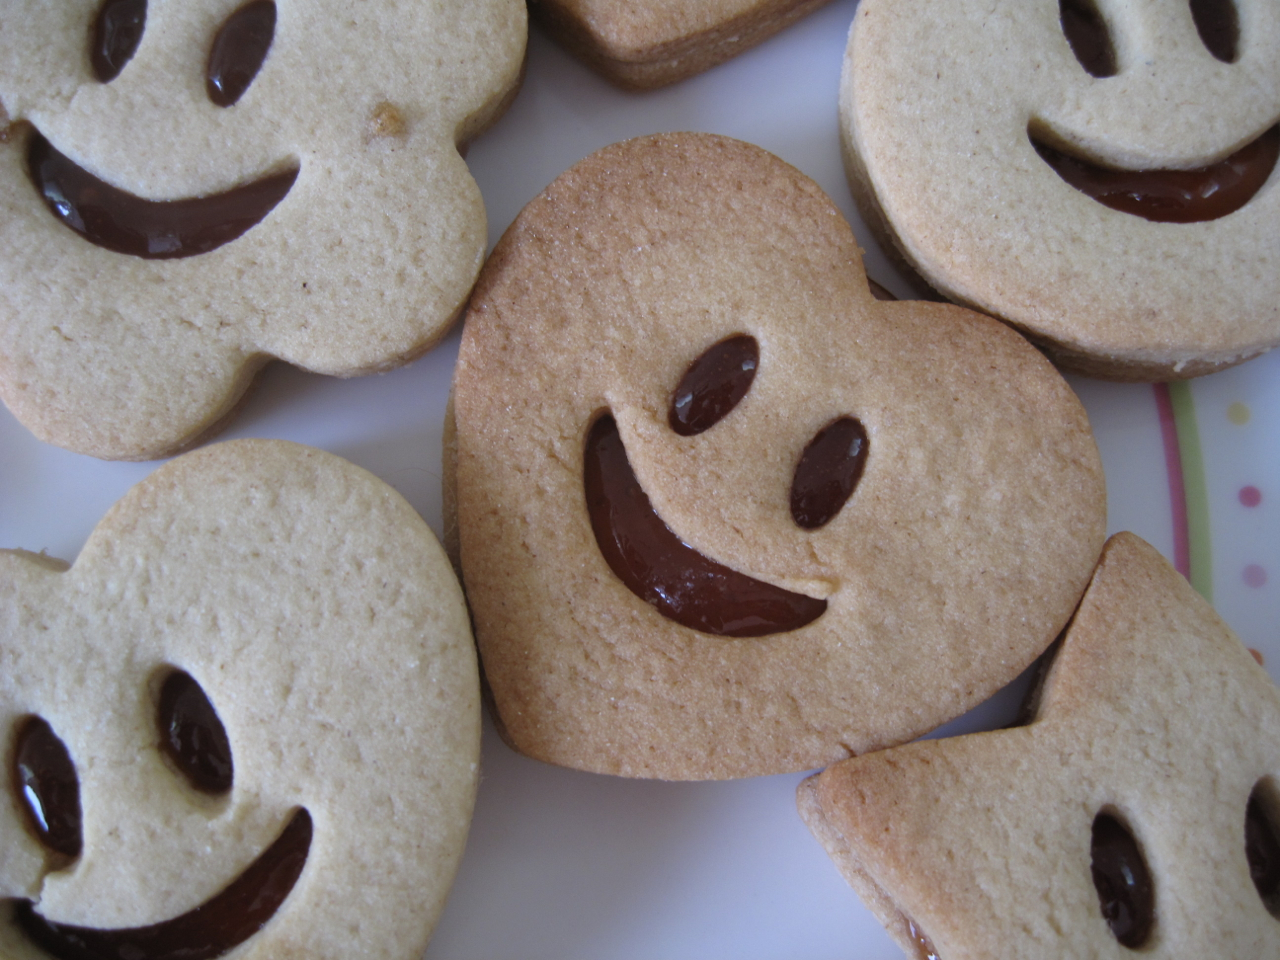 smiley jammy dodger biscuits